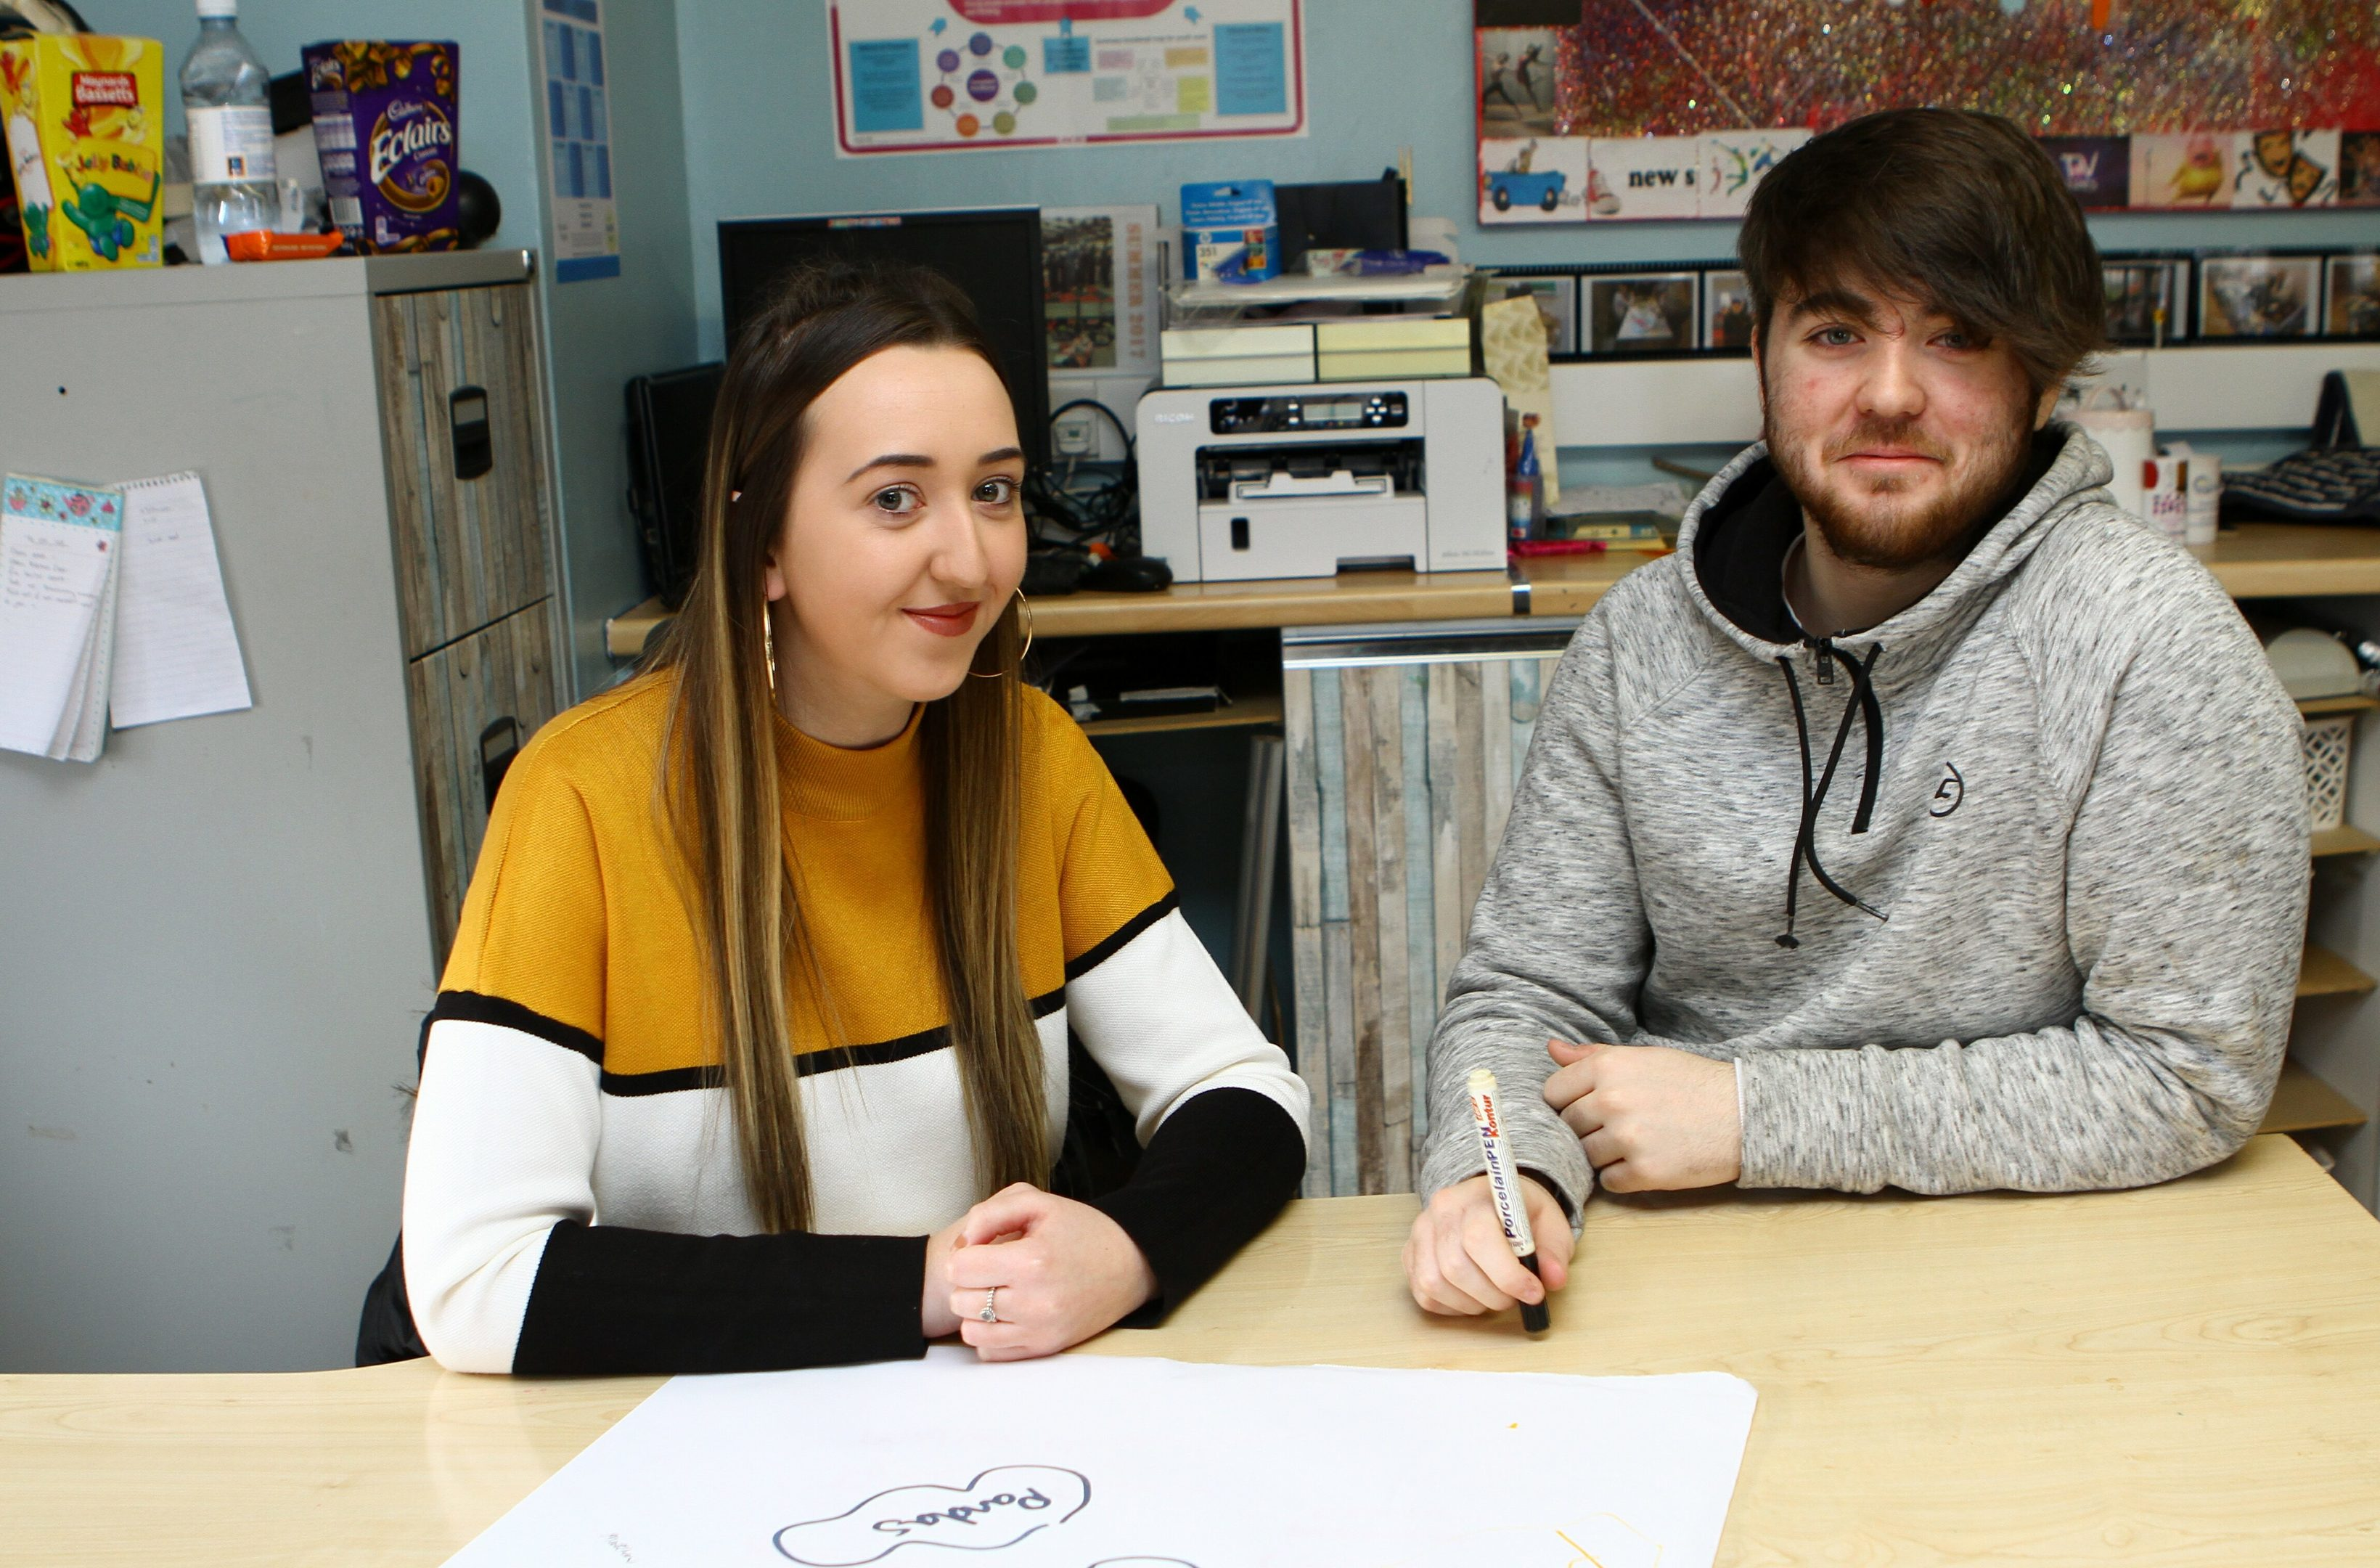 Kelsey McLellan - CLD student and Matthew Johnston - Caretaker and Youth Worker at Rock Solid in Douglas, Dundee